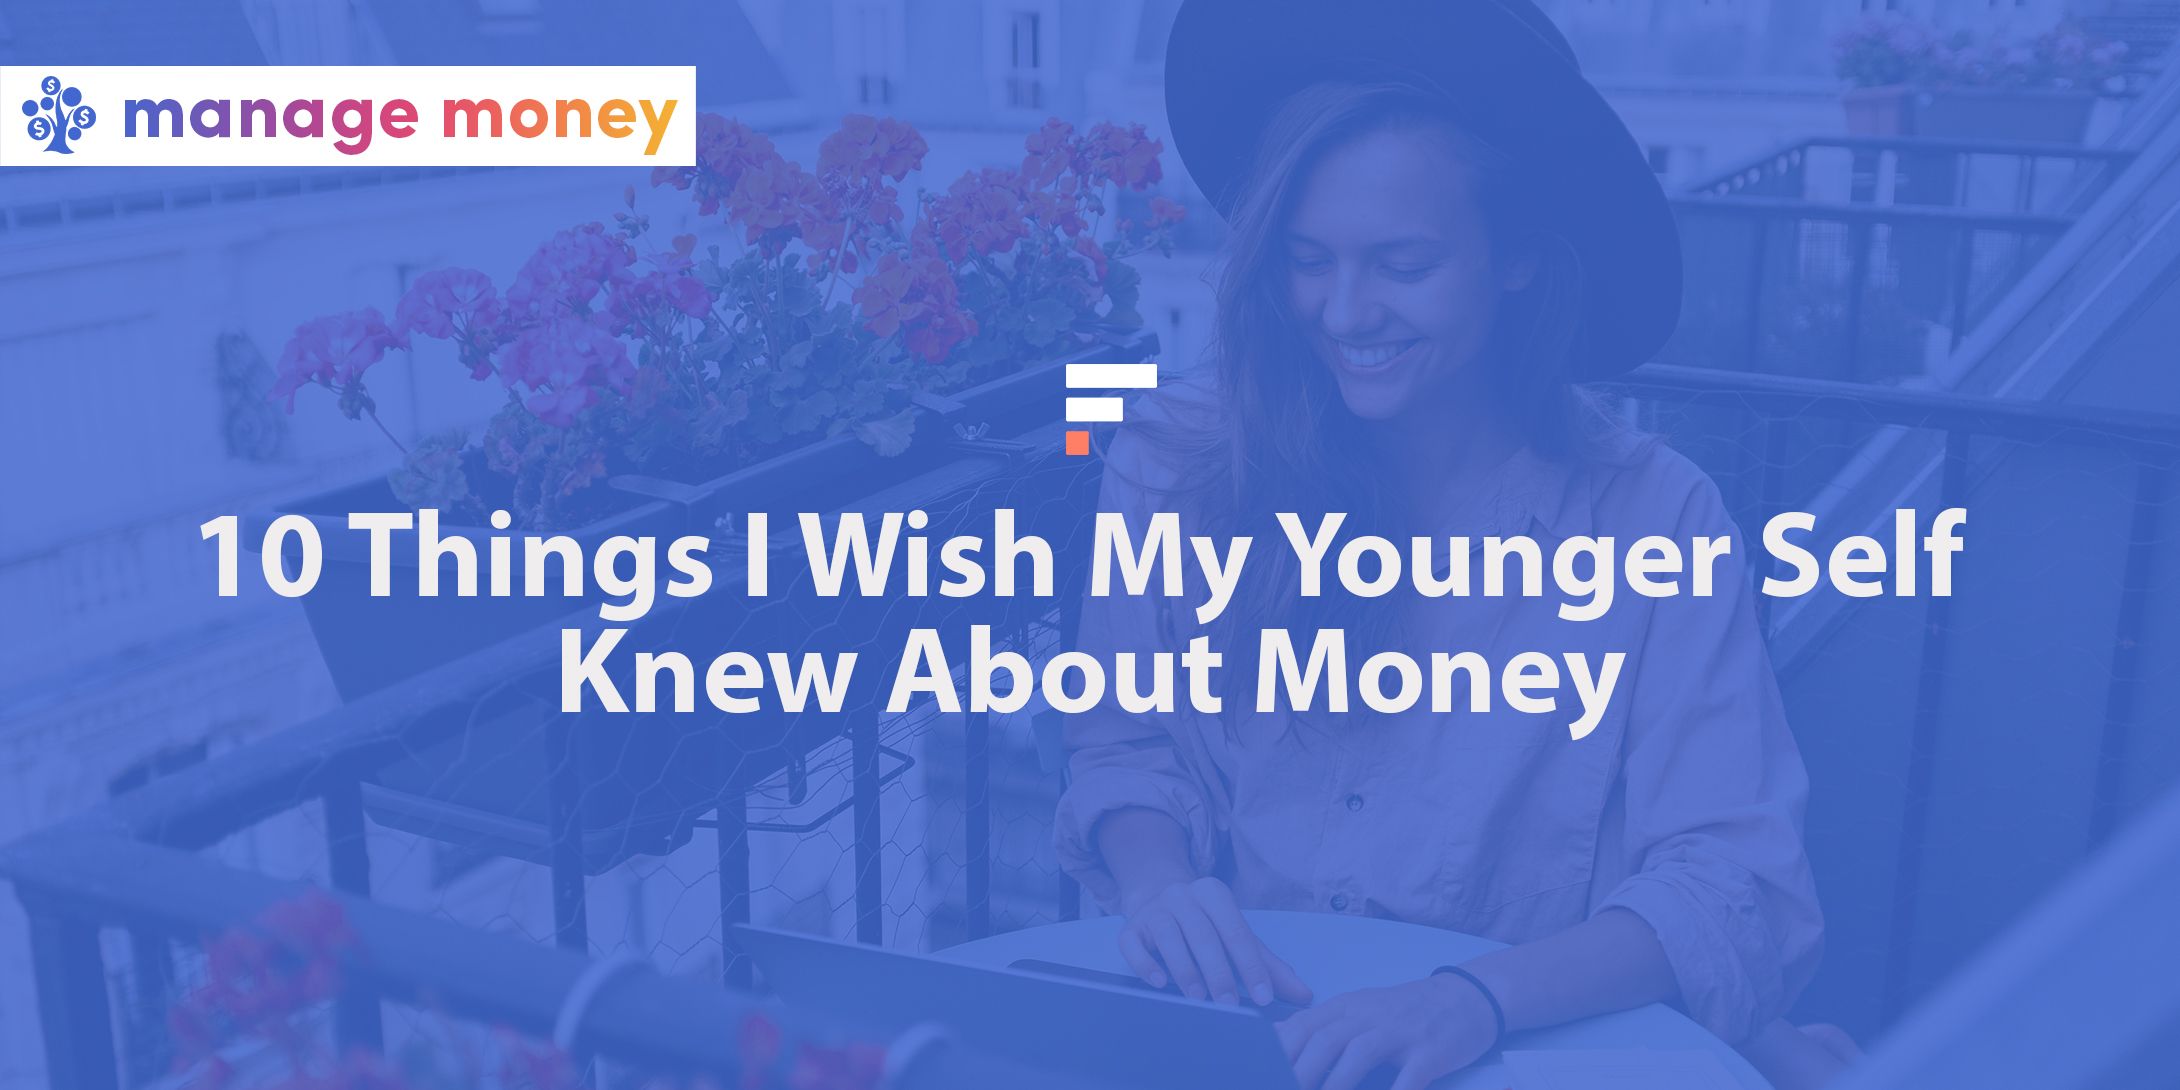 10 Things I Wish My Younger Self Knew About Money